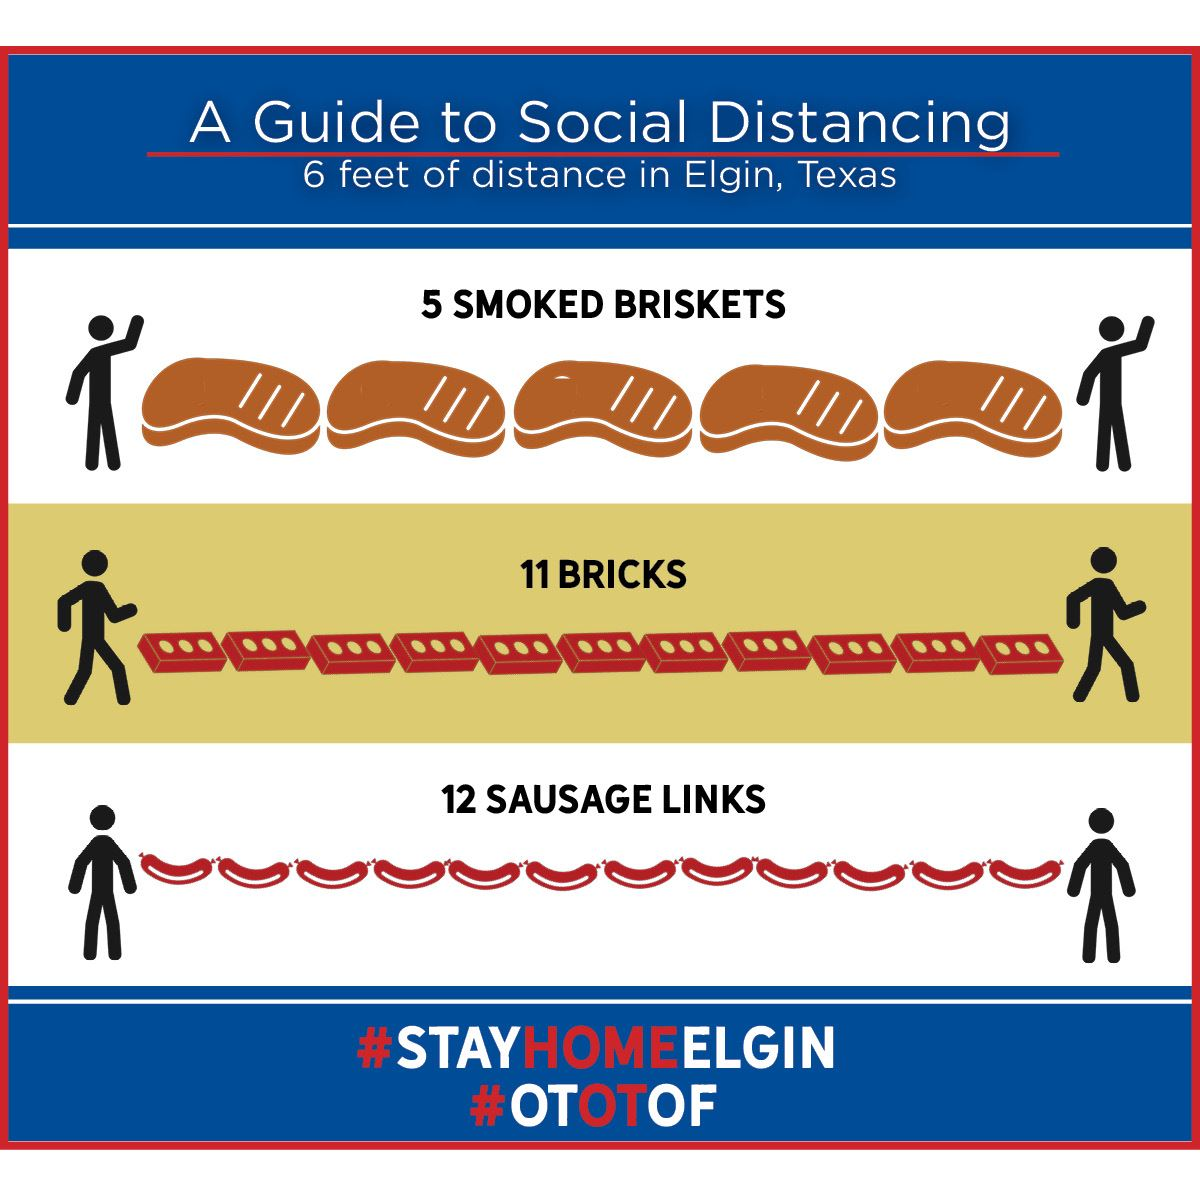 An Elgin Guide to Social Distancing